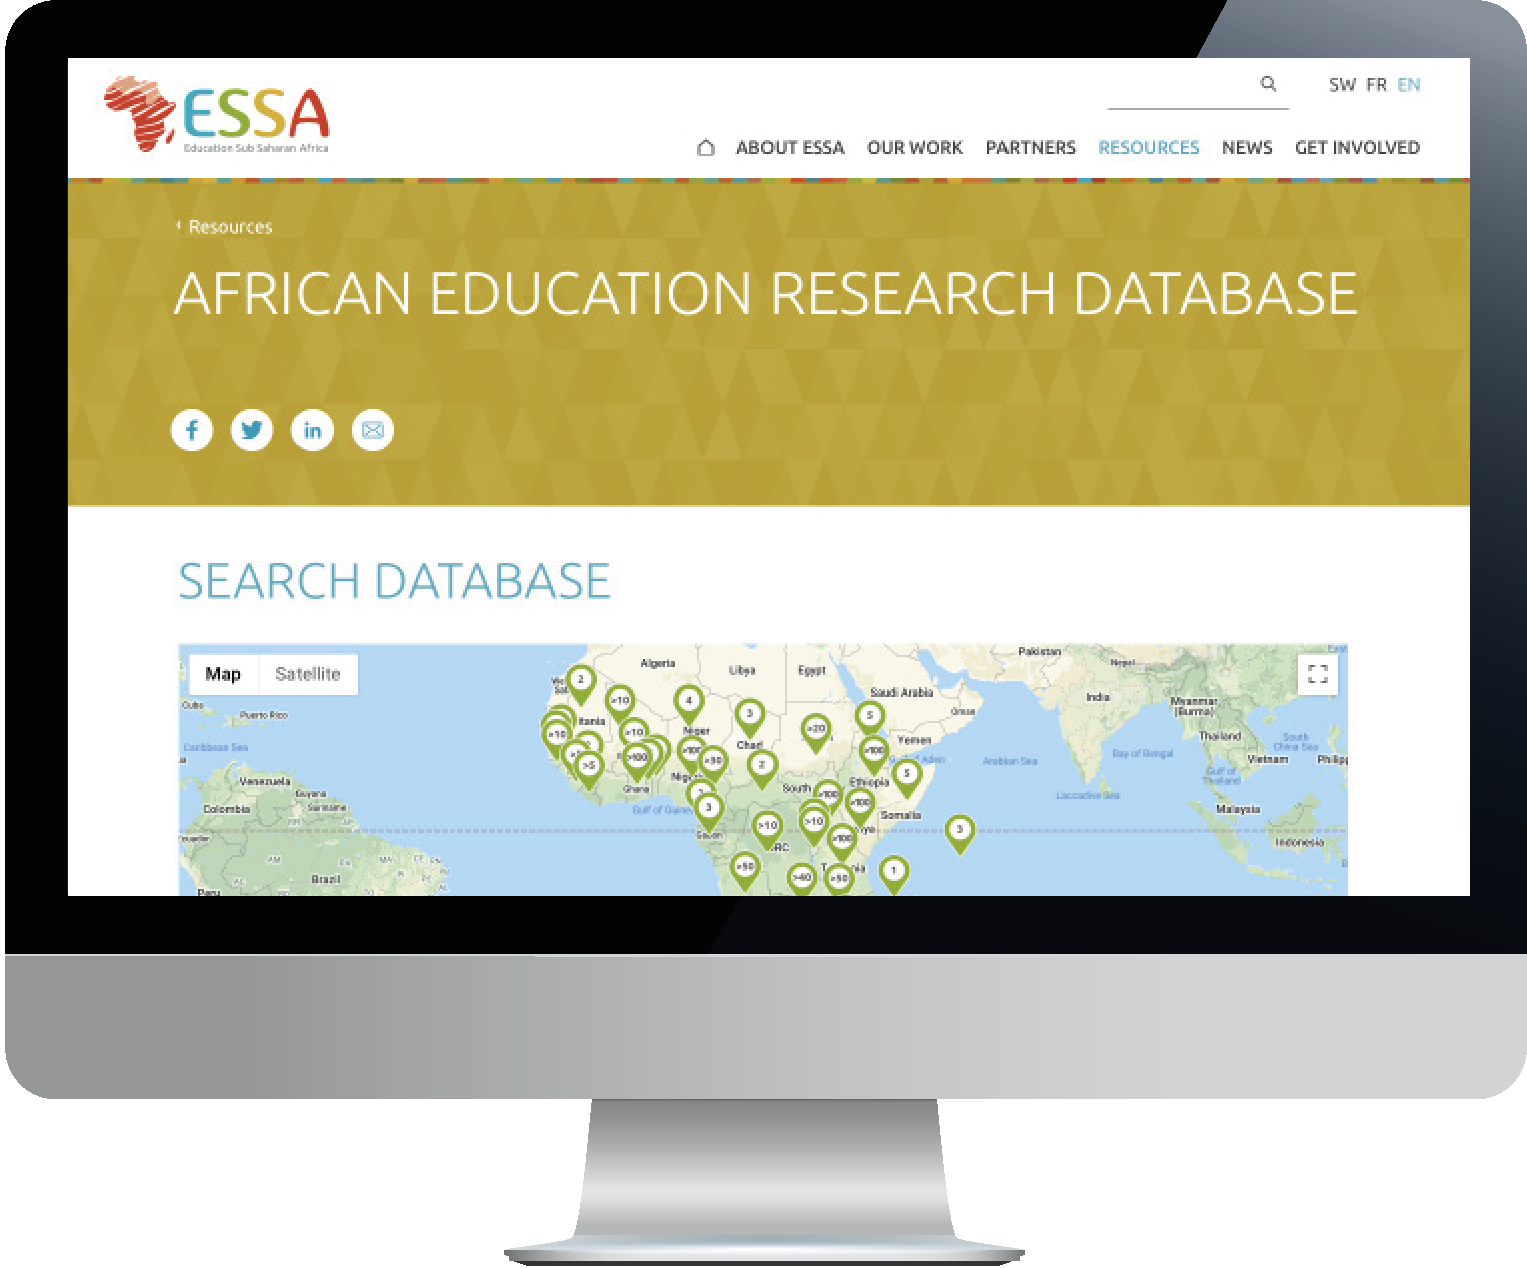 The African Education Research Database